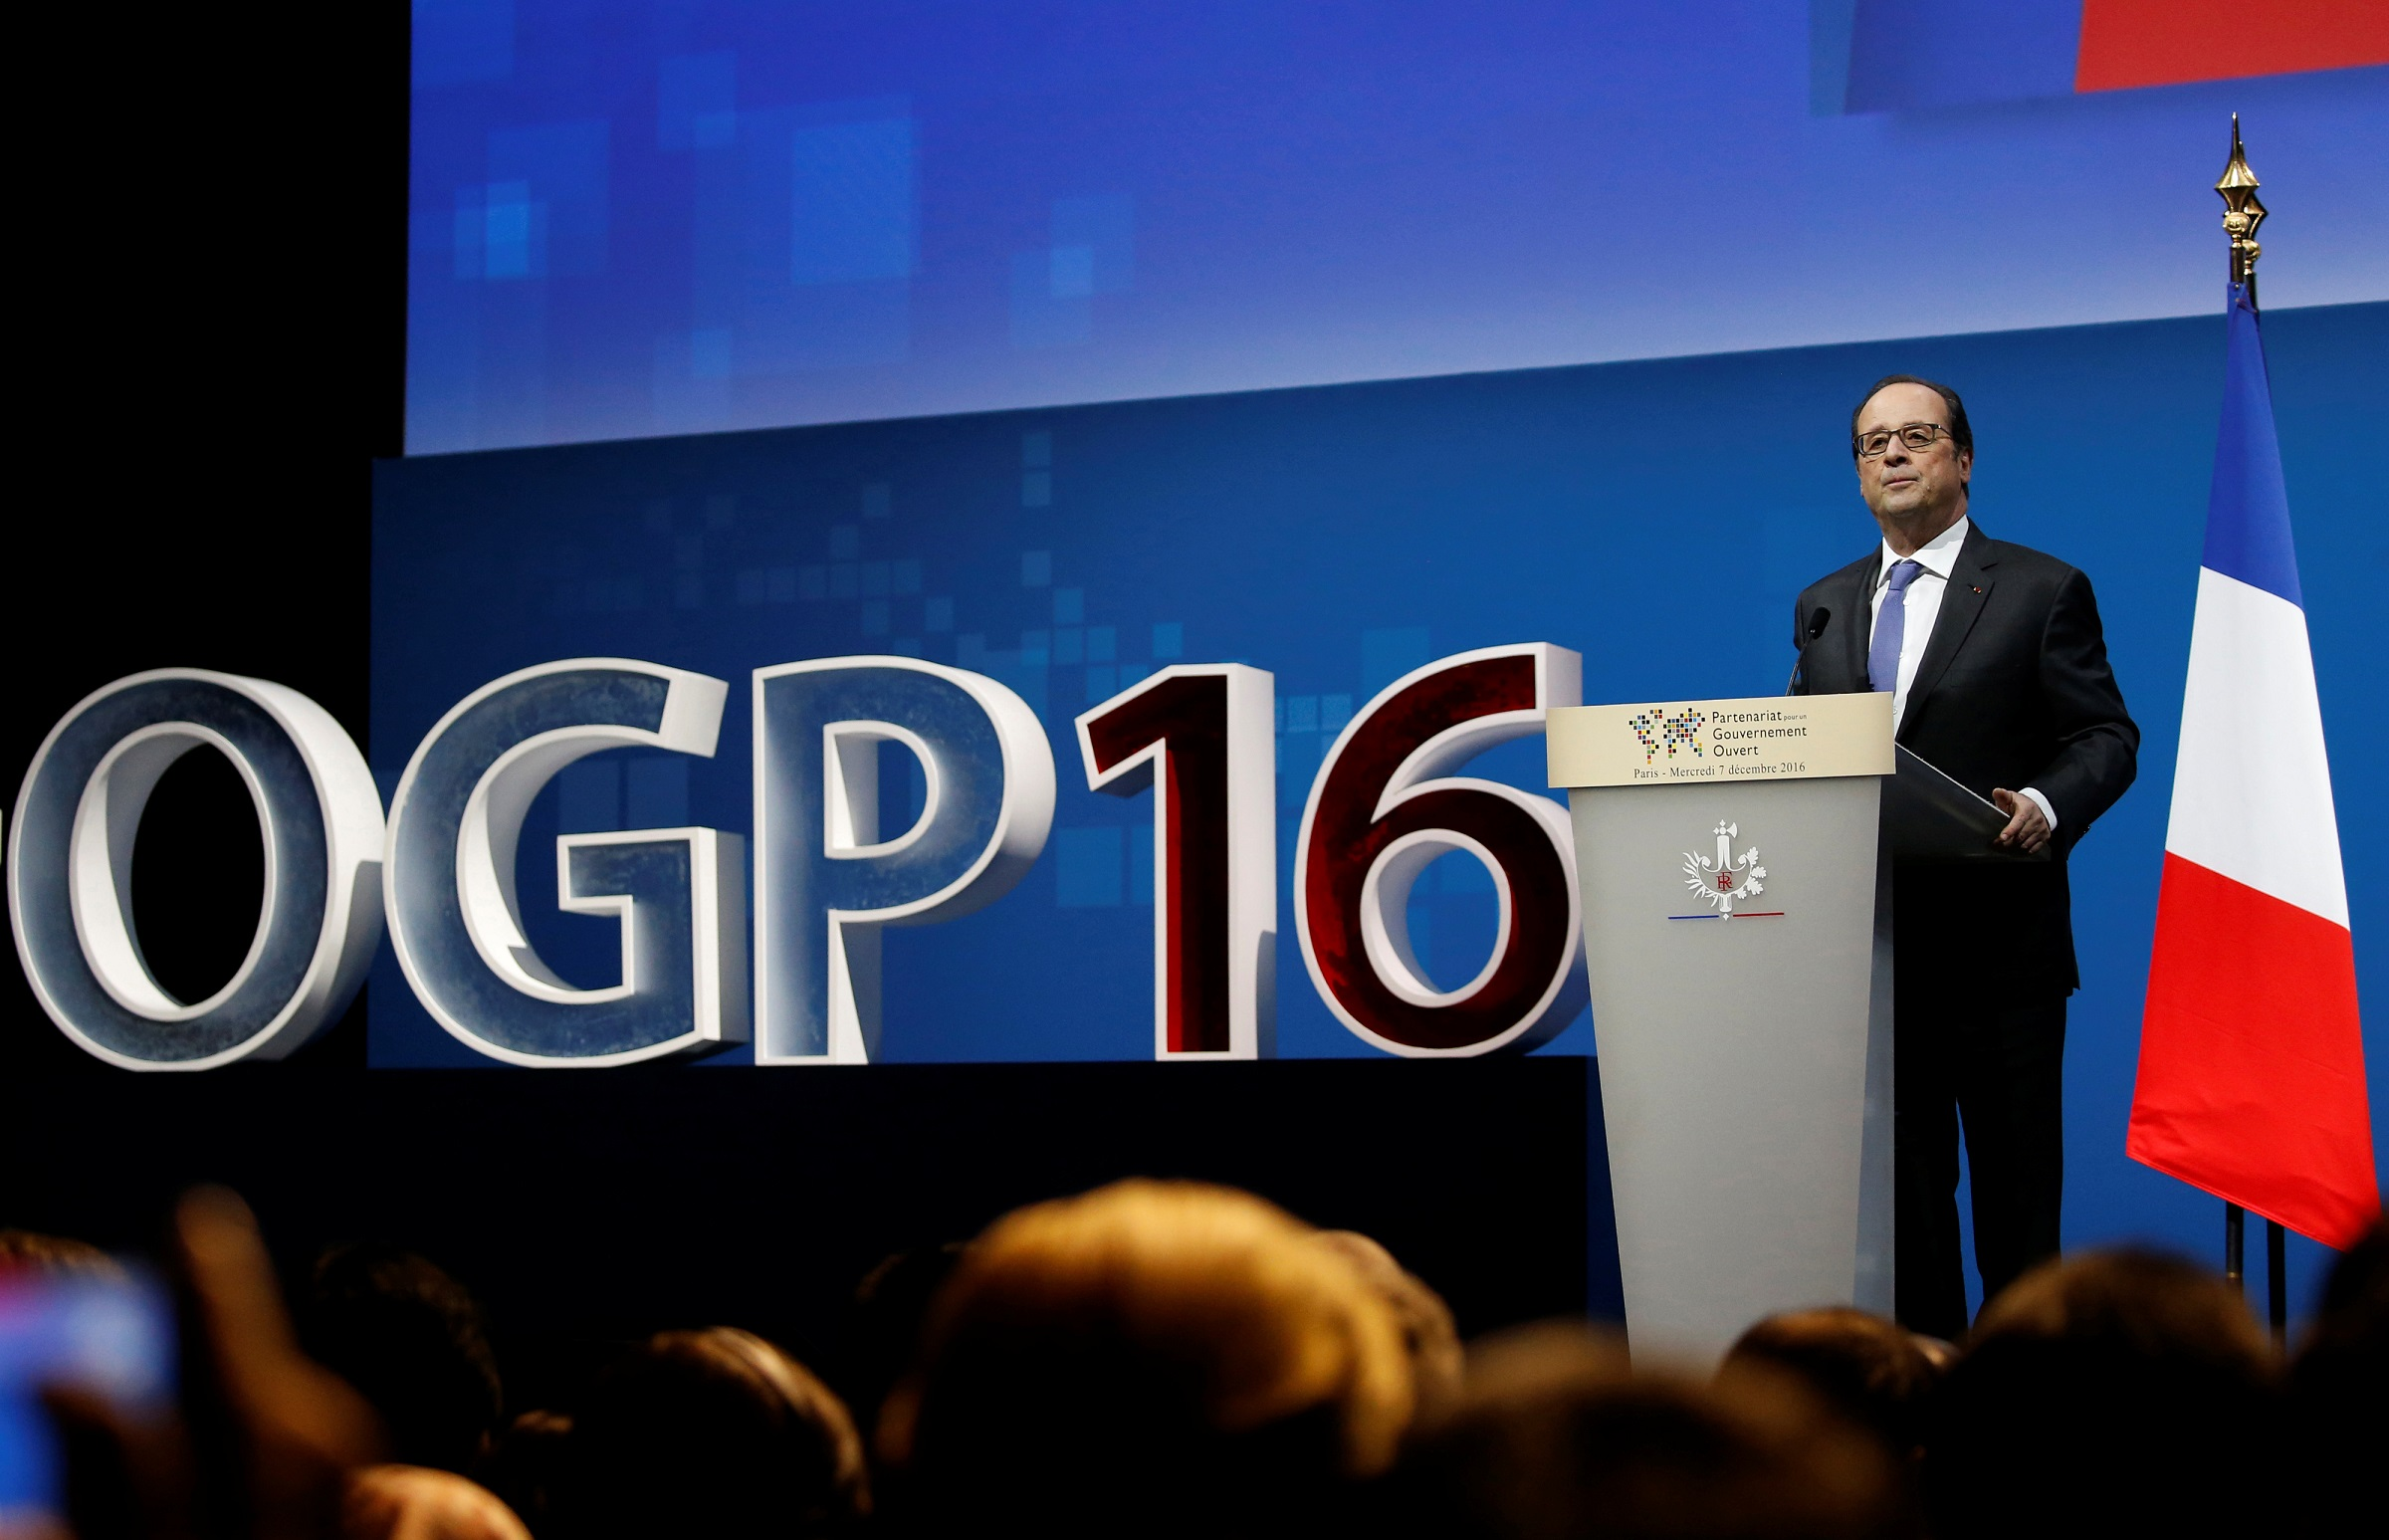 """French President Francois Hollande delivers a speech during the opening ceremony of the summit for """"Open Government Partnership"""" in Paris, France, December 7, 2016.  REUTERS/Jacky Naegelen - RTSV3OI"""